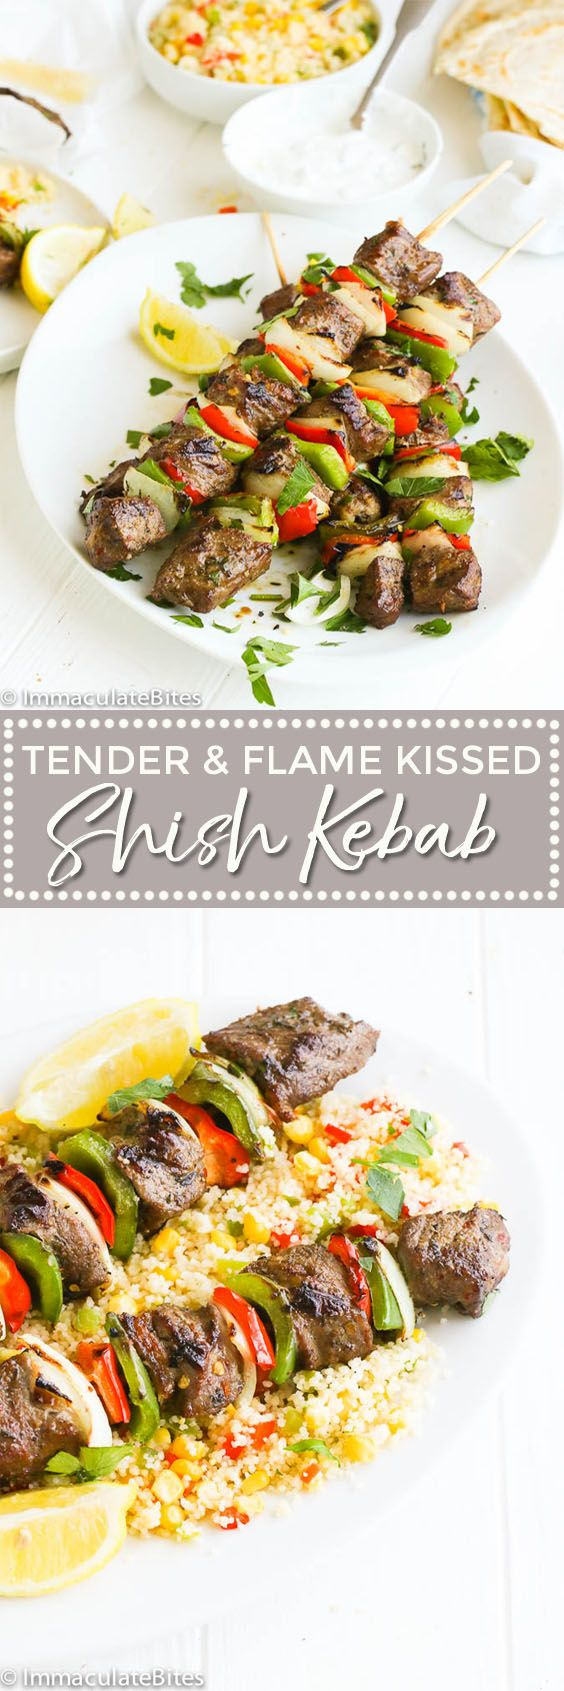 Shish Kebab -- a delightful flavorful dish on skewers with chunks of marinade beef and veggies grilled to perfection